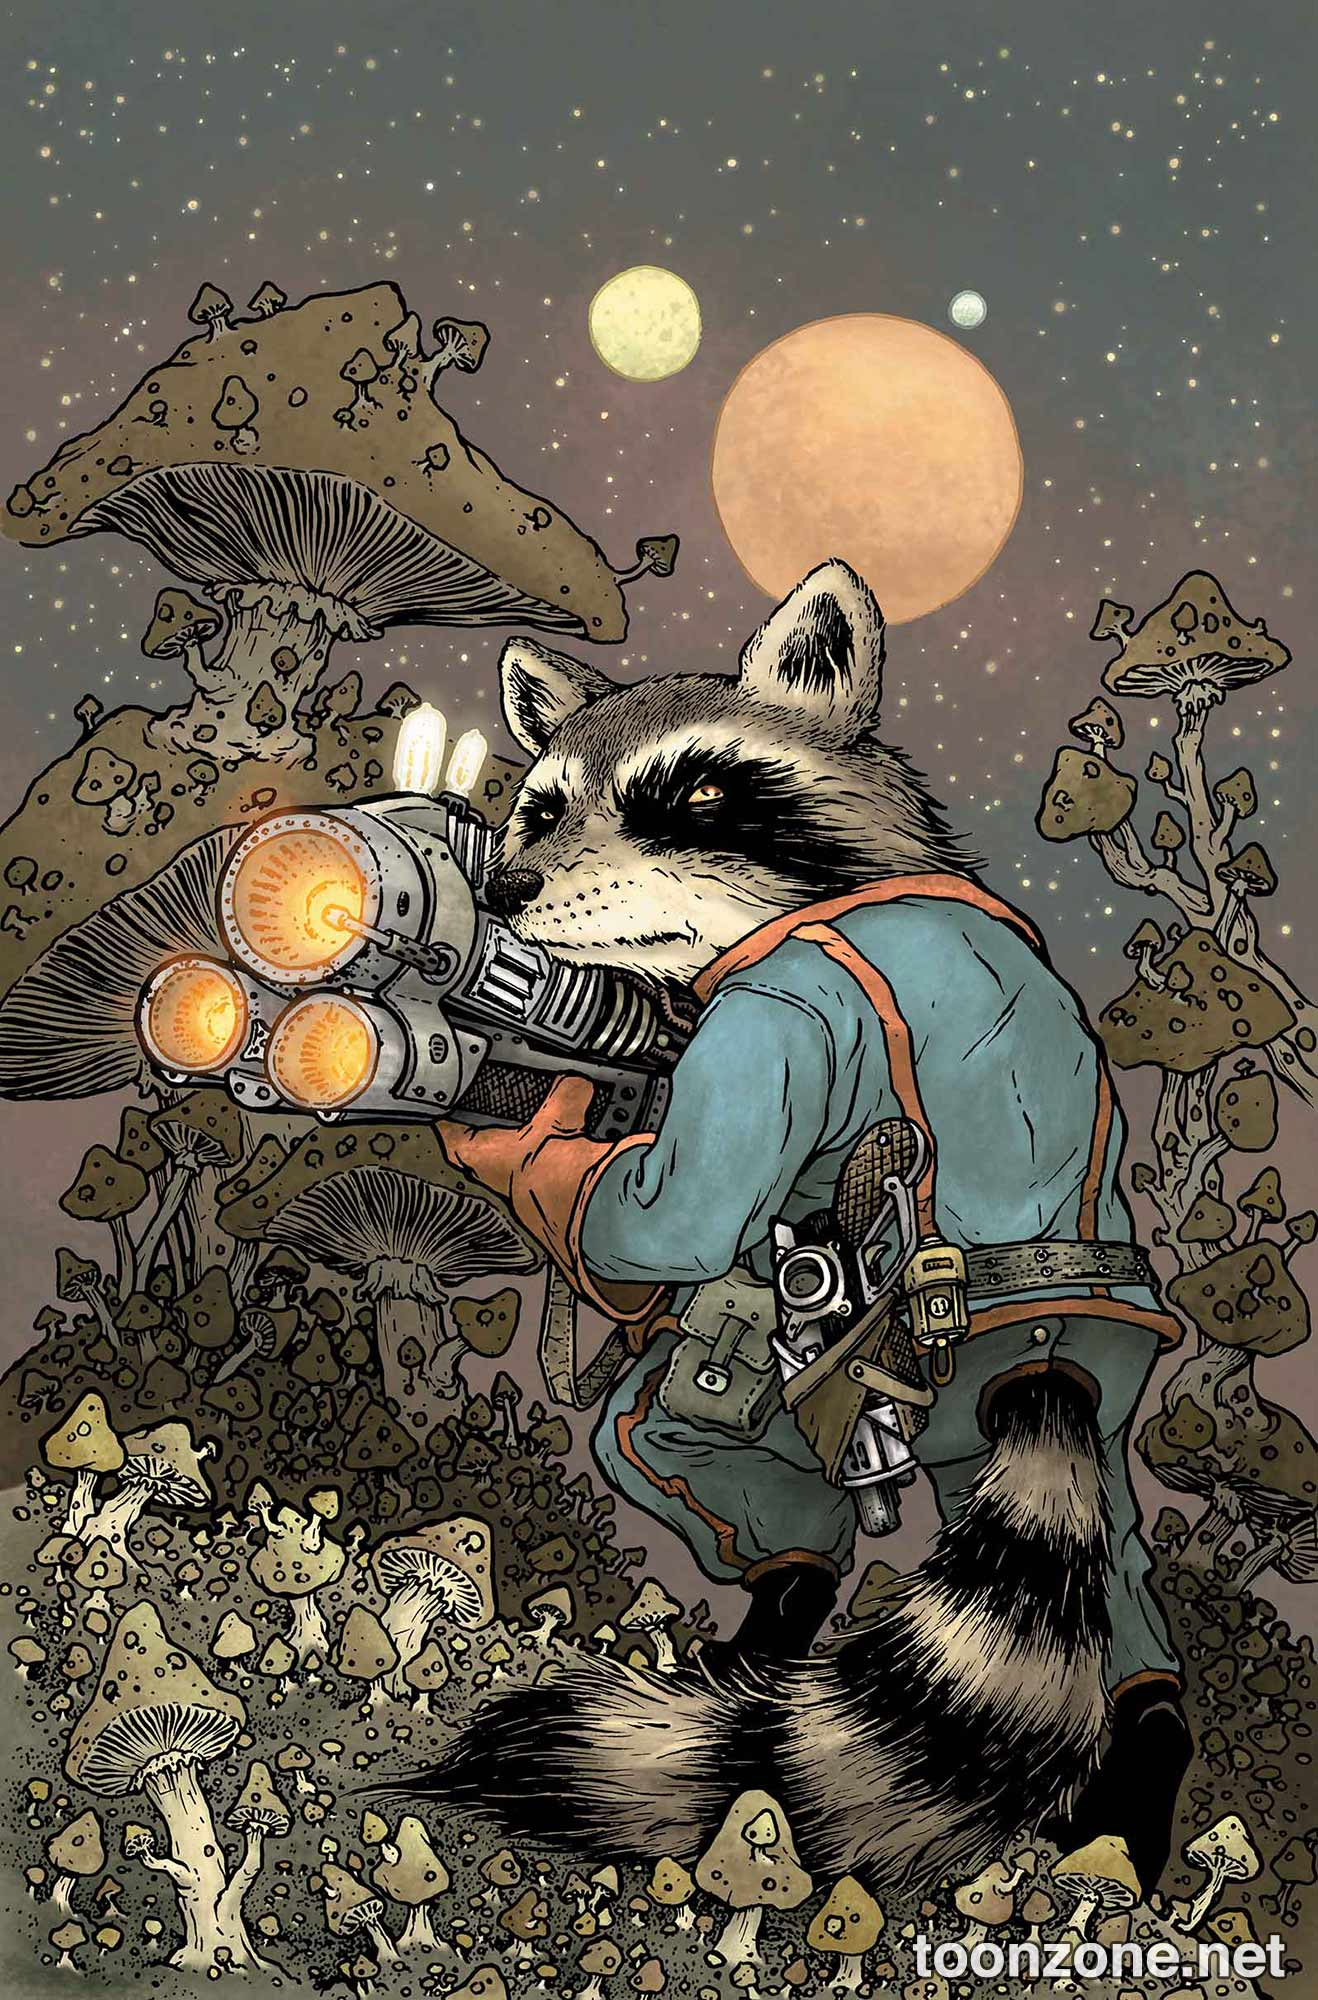 ROCKET RACCOON #1 (David Petersen Variant)